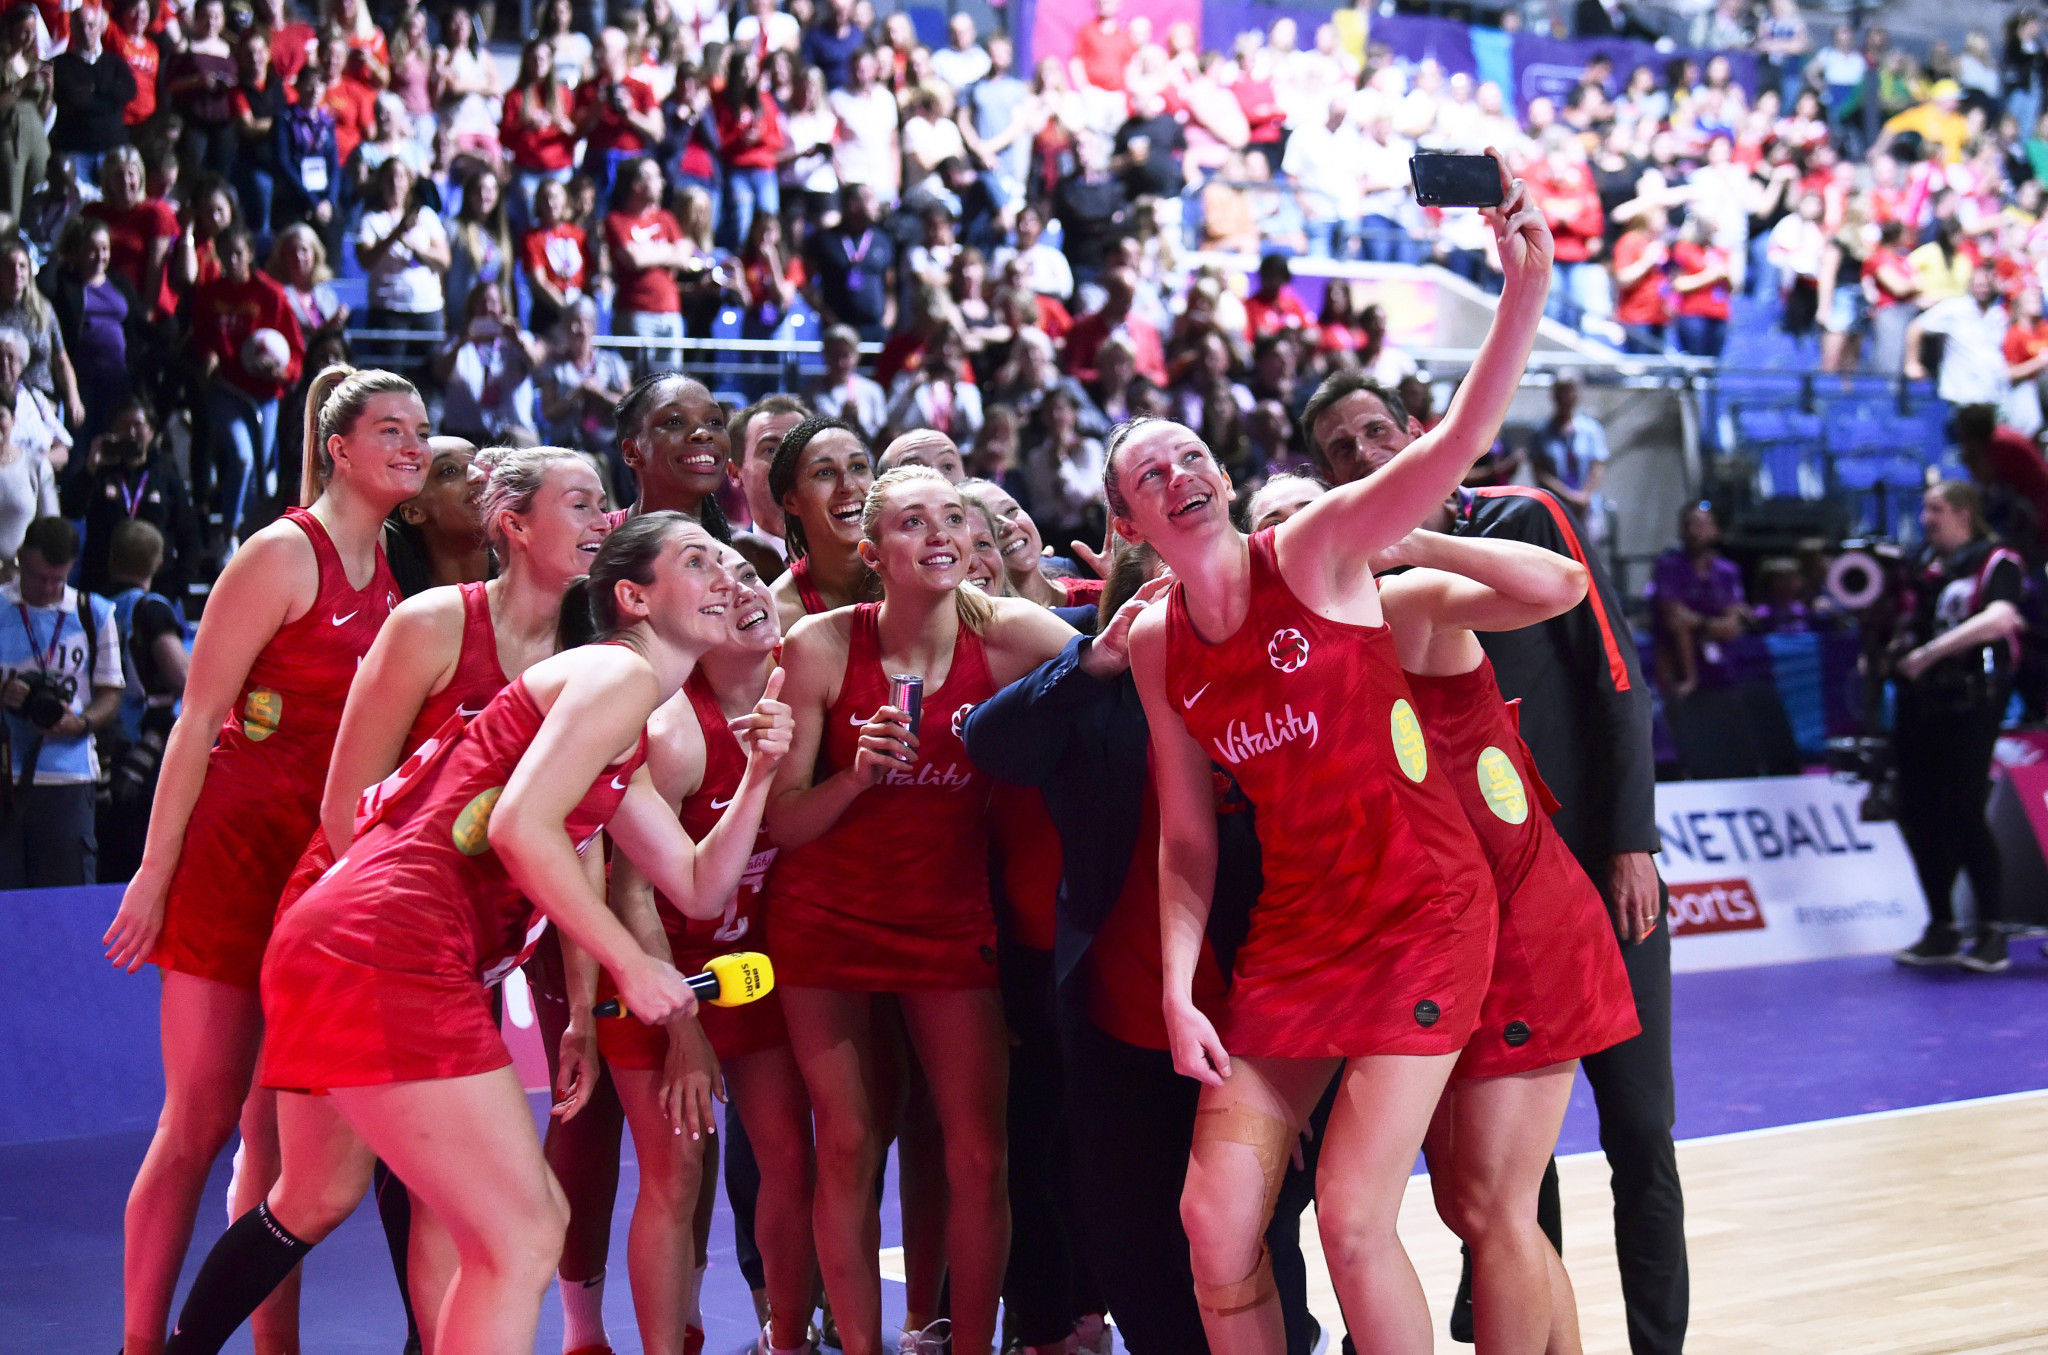 Hosts England were the bronze medallists at last month's Netball World Cup in Liverpool ©Getty Images